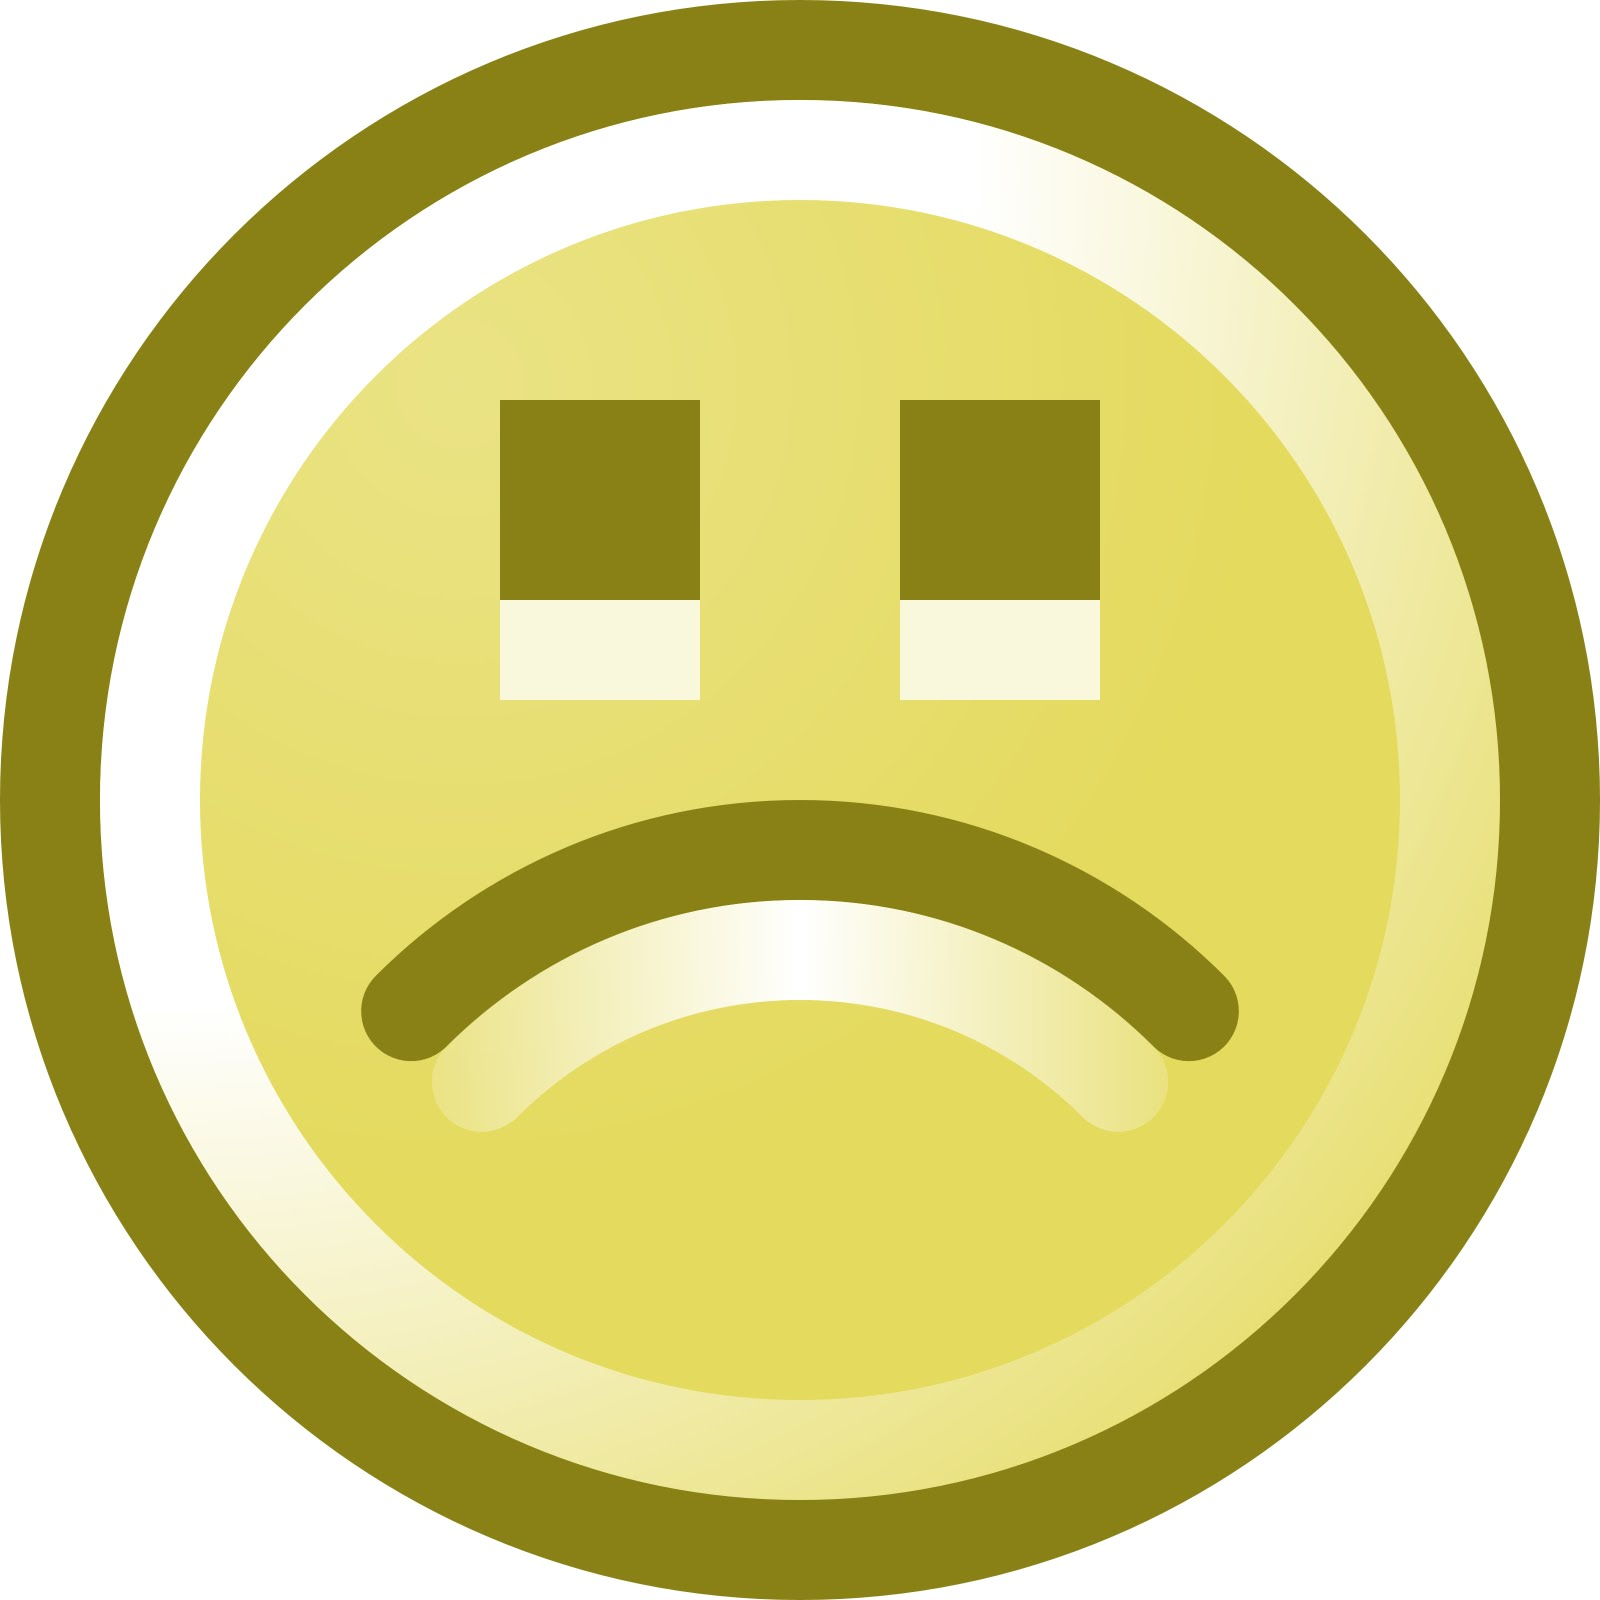 Depression clipart frustration. Simple smiley face clip